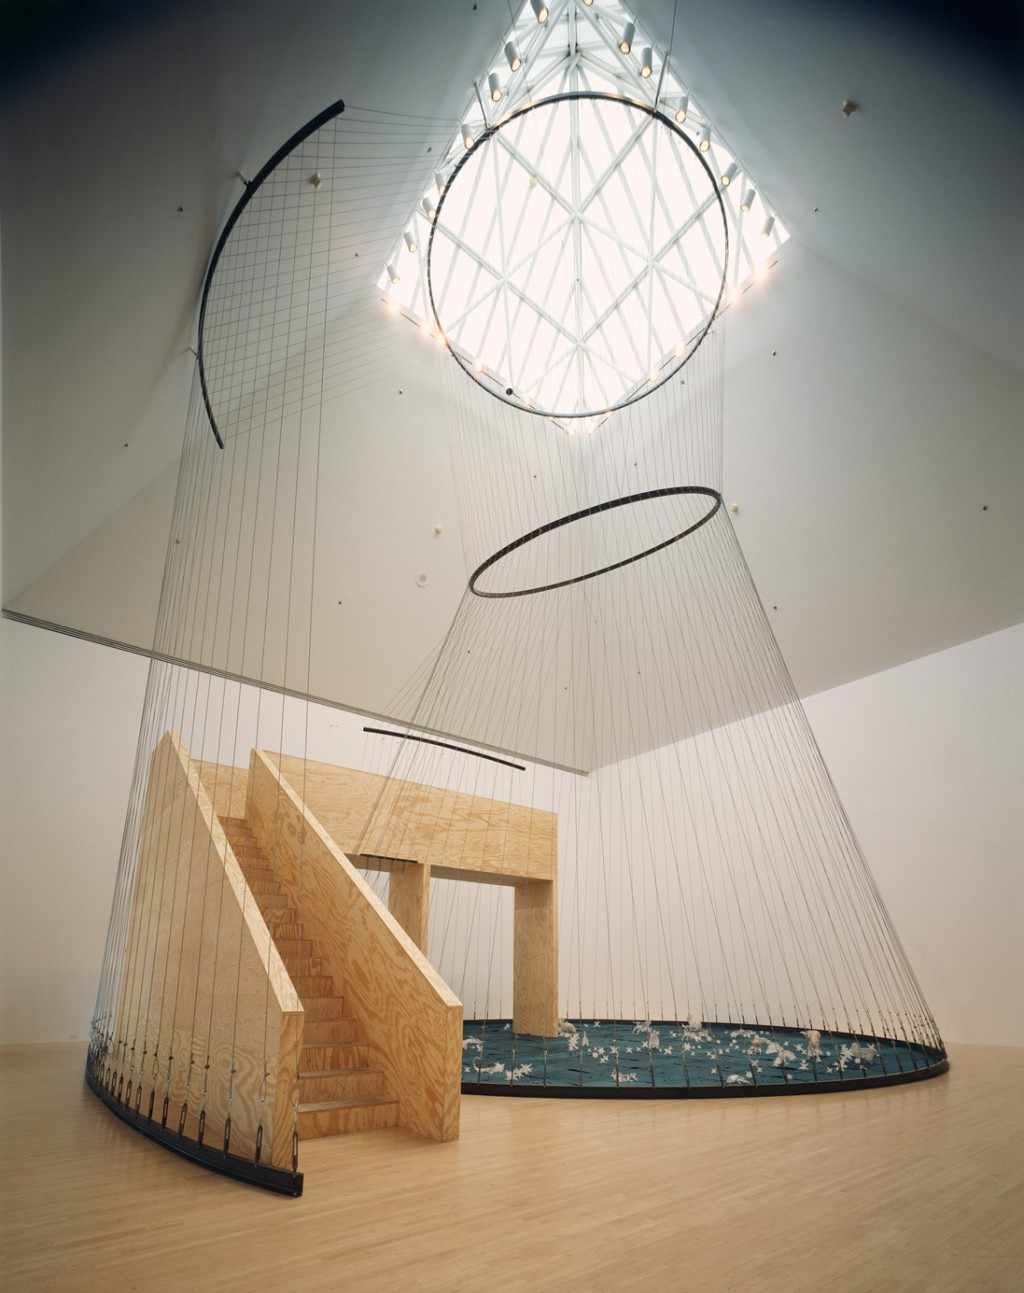 Coop Himmelb(l)au Museum of Contemporary Art Los Angeles Paradise Cage.jpg